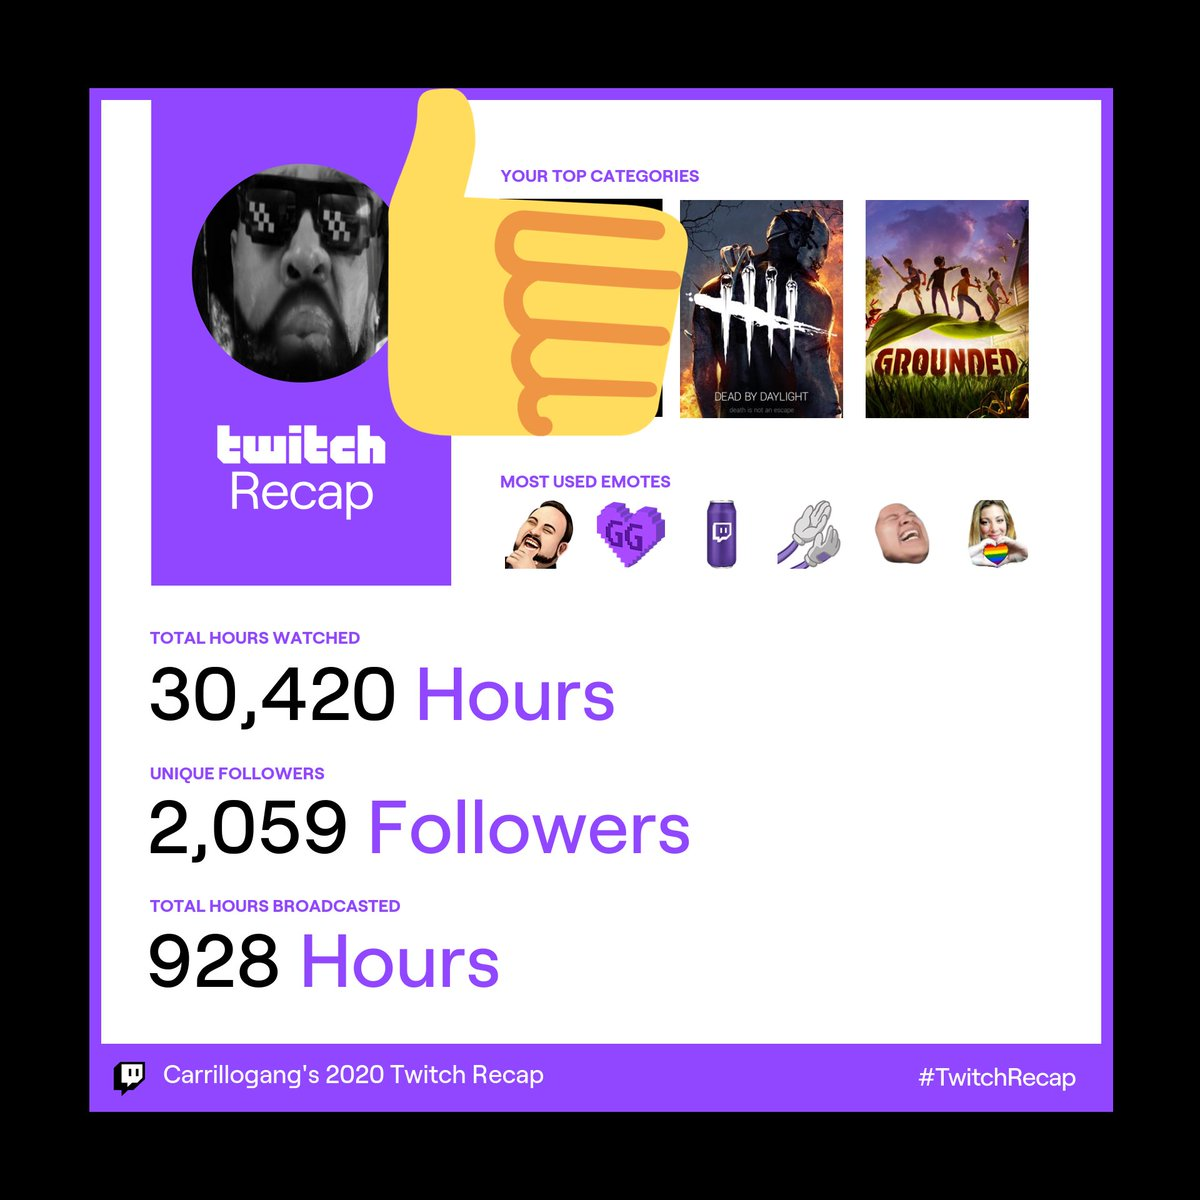 Carrillo - Forgot this one too, crazy that I didnt even reach 1k hours streamd but then again, 2020 suckd and its okay that I didnt stream everyday and that most streams were under 4hours ❤️ looking forward to seeing what new things we can accomplish together in 2021